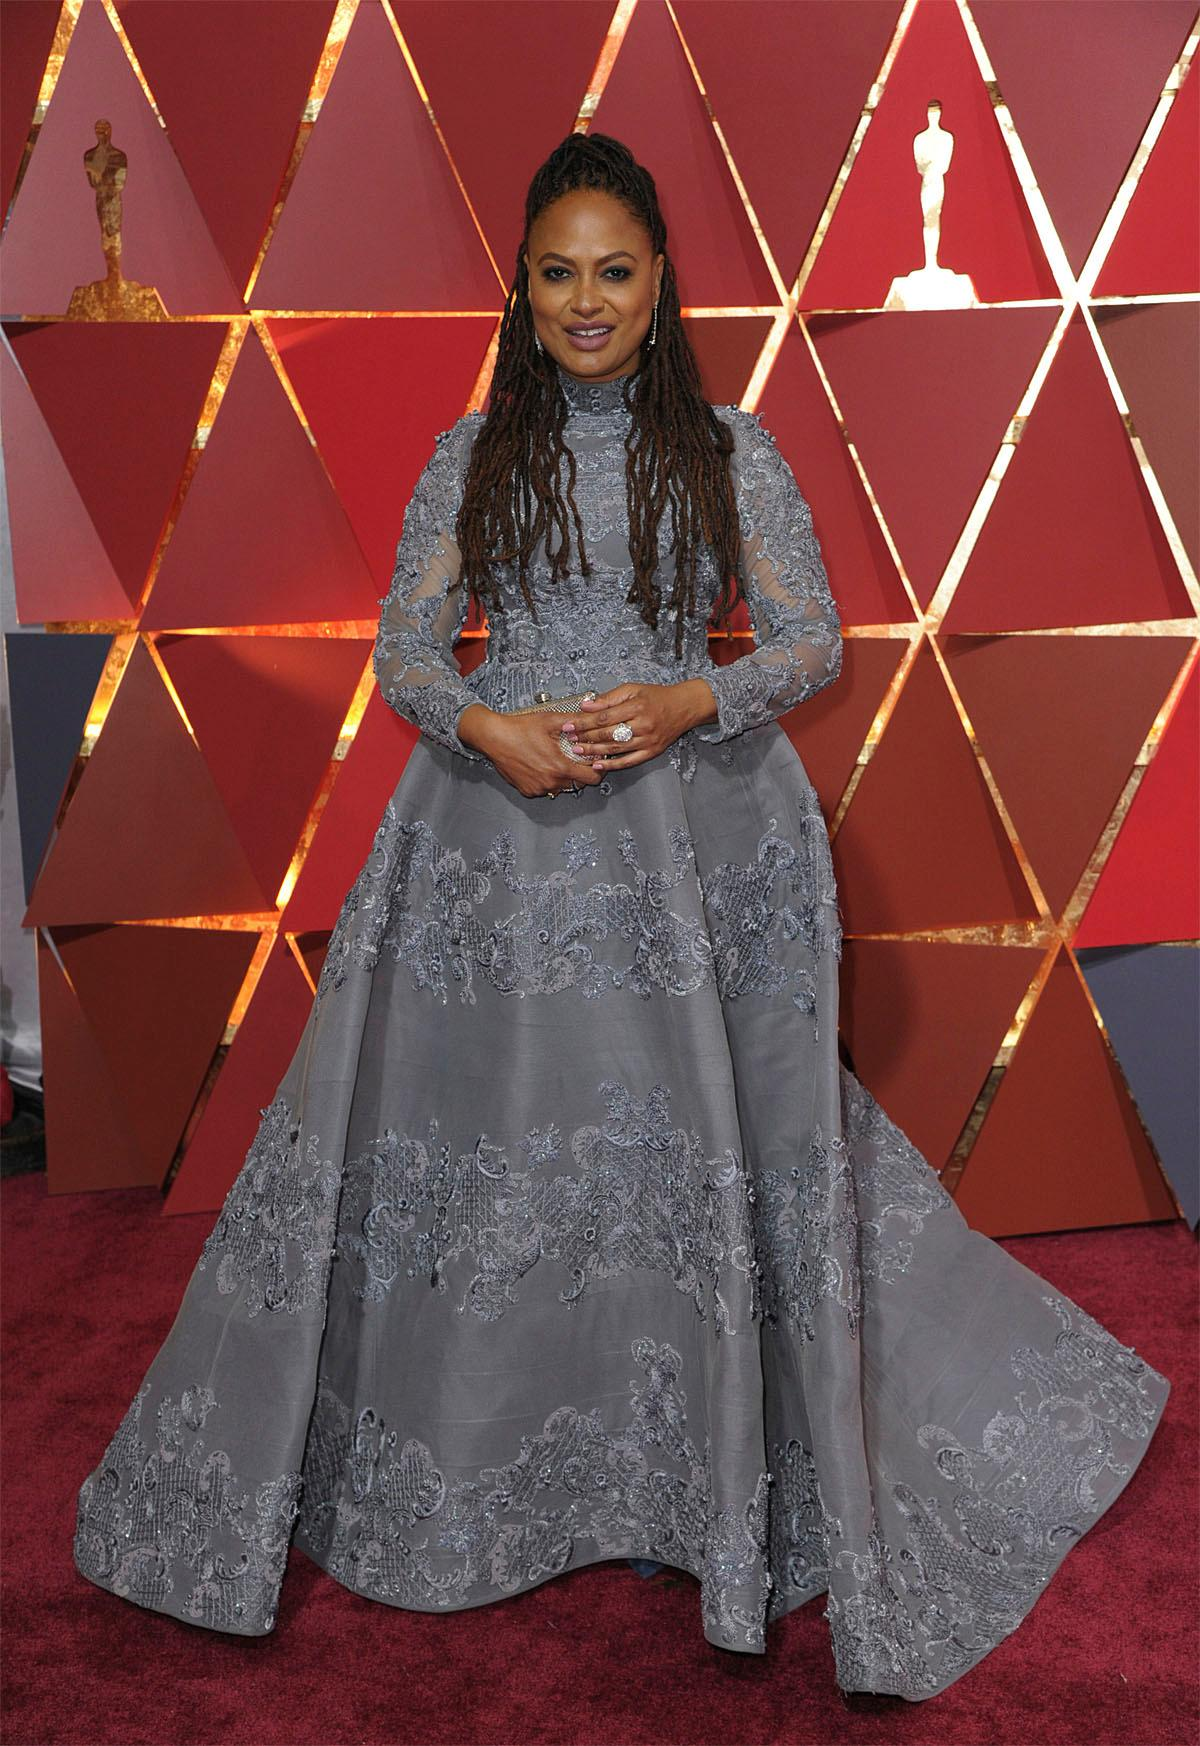 Ava DuVernay arrives at the Oscars on Sunday, Feb. 26, 2017, at the Dolby Theatre in Los Angeles. (Photo by Richard Shotwell/Invision/AP)